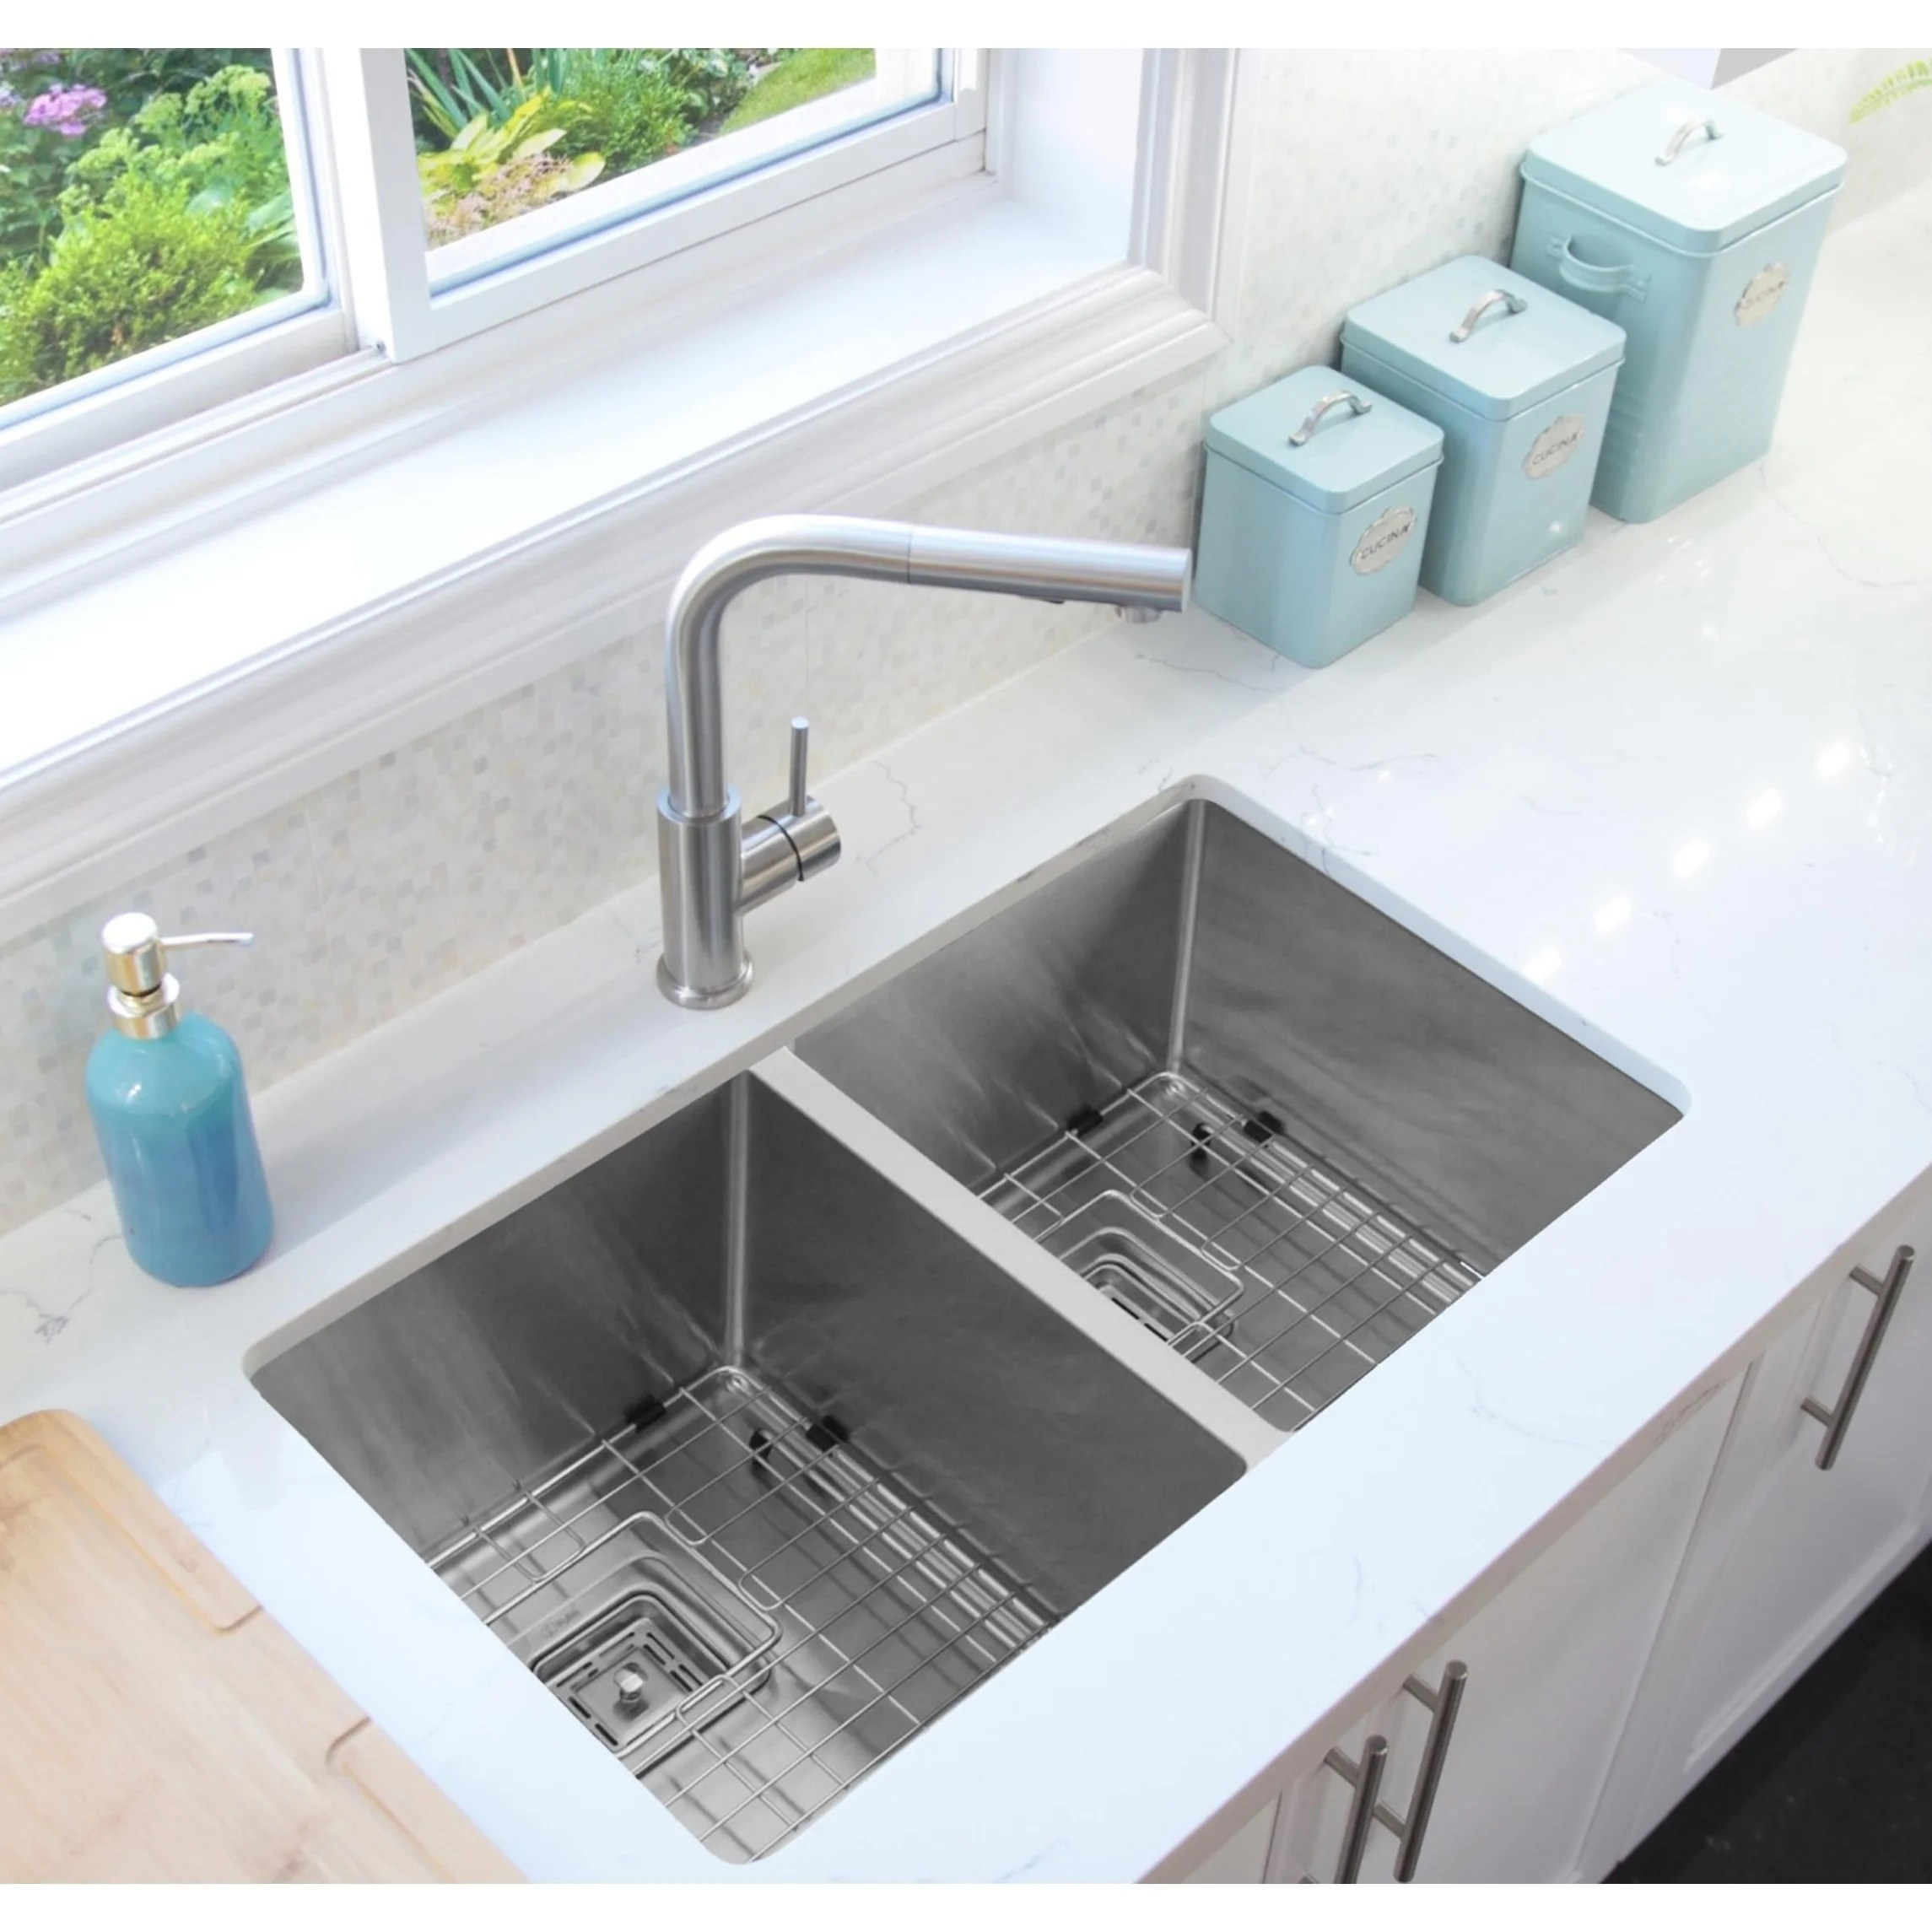 32 undermount double bowl kitchen sink 16 gauge stainless steel two grids two square strainers c232